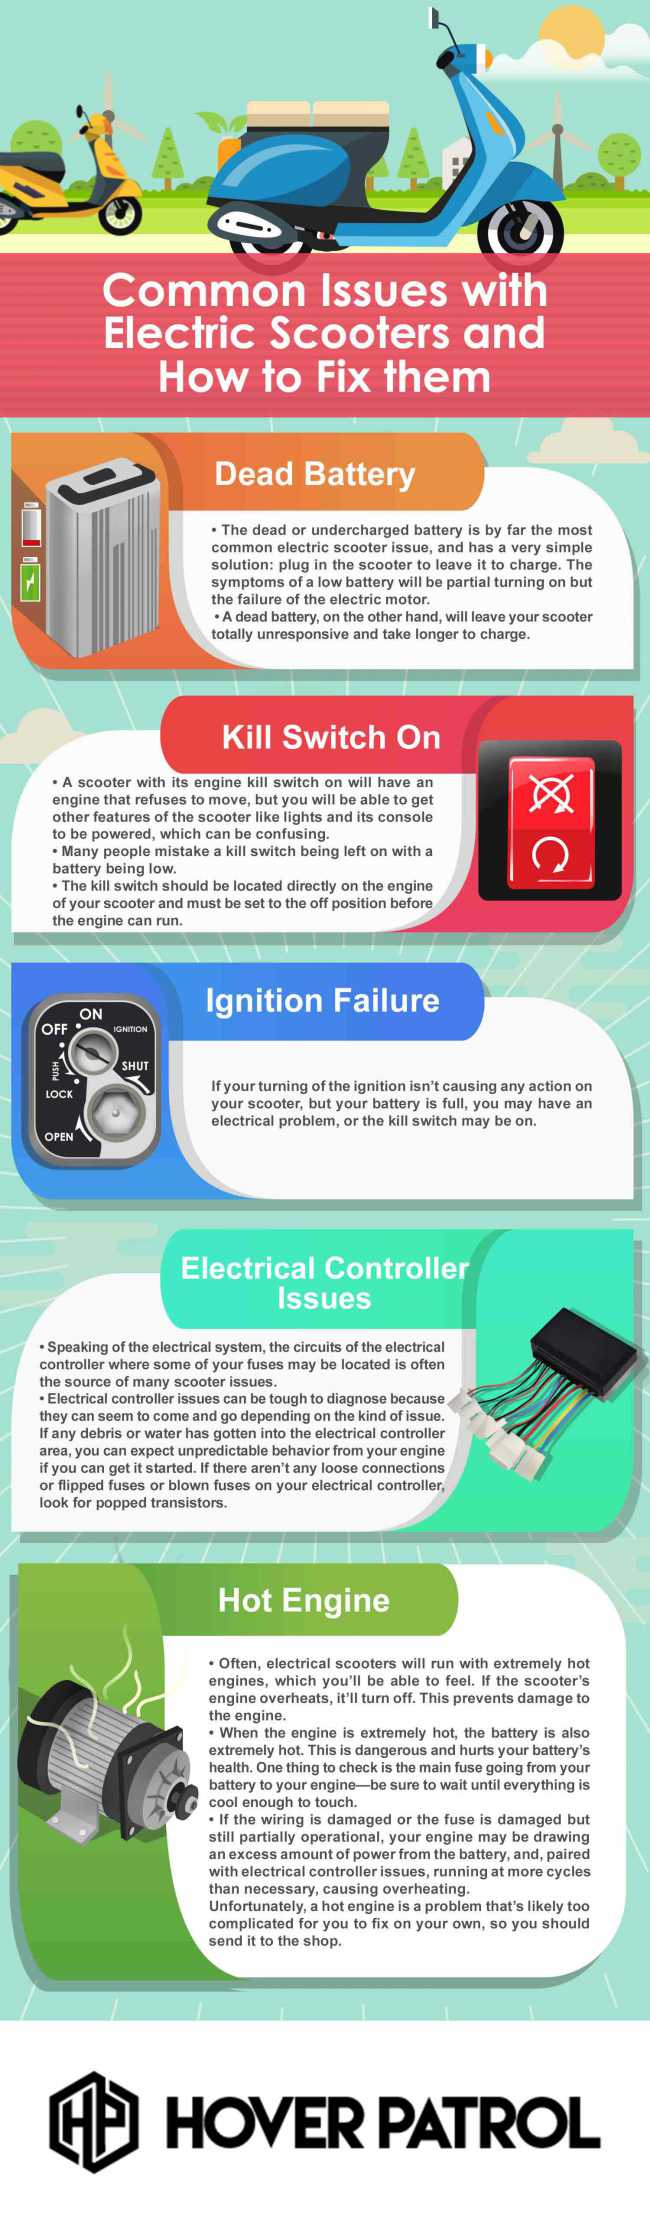 Fixing an electric scooter - infographic